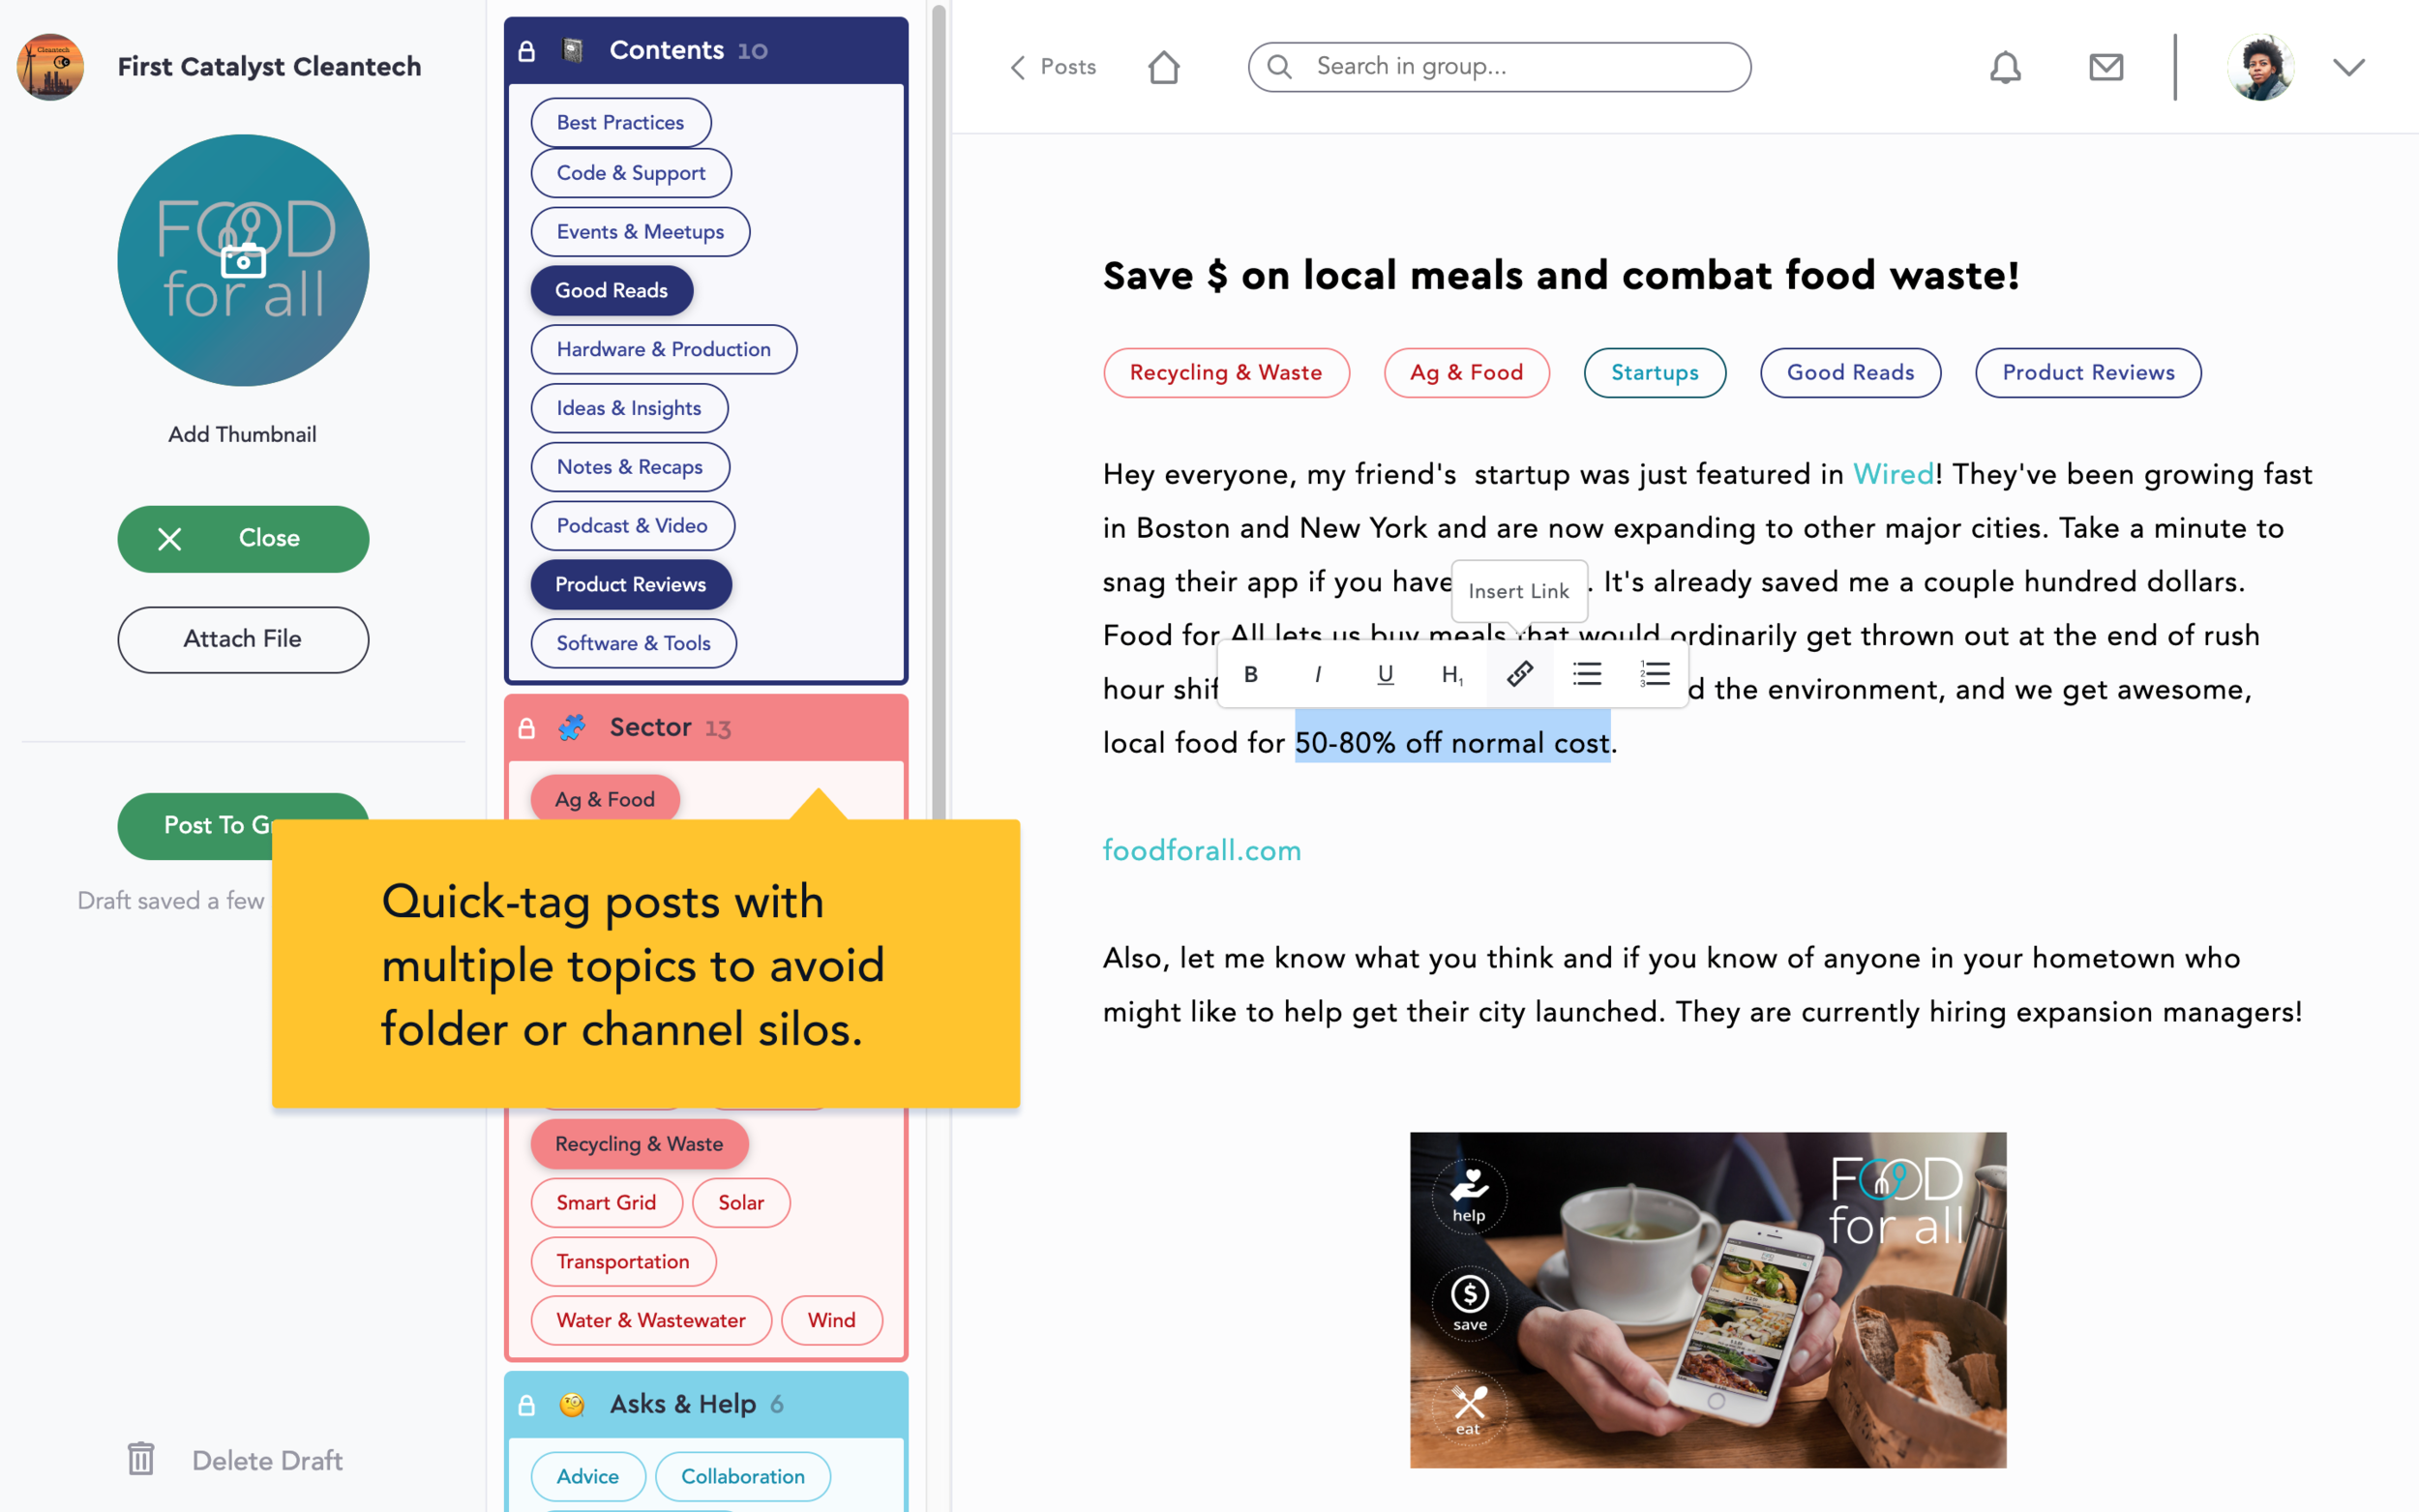 A group's post Editor lets them compose posts and tag them with a swing-out menu of ready-made tags.